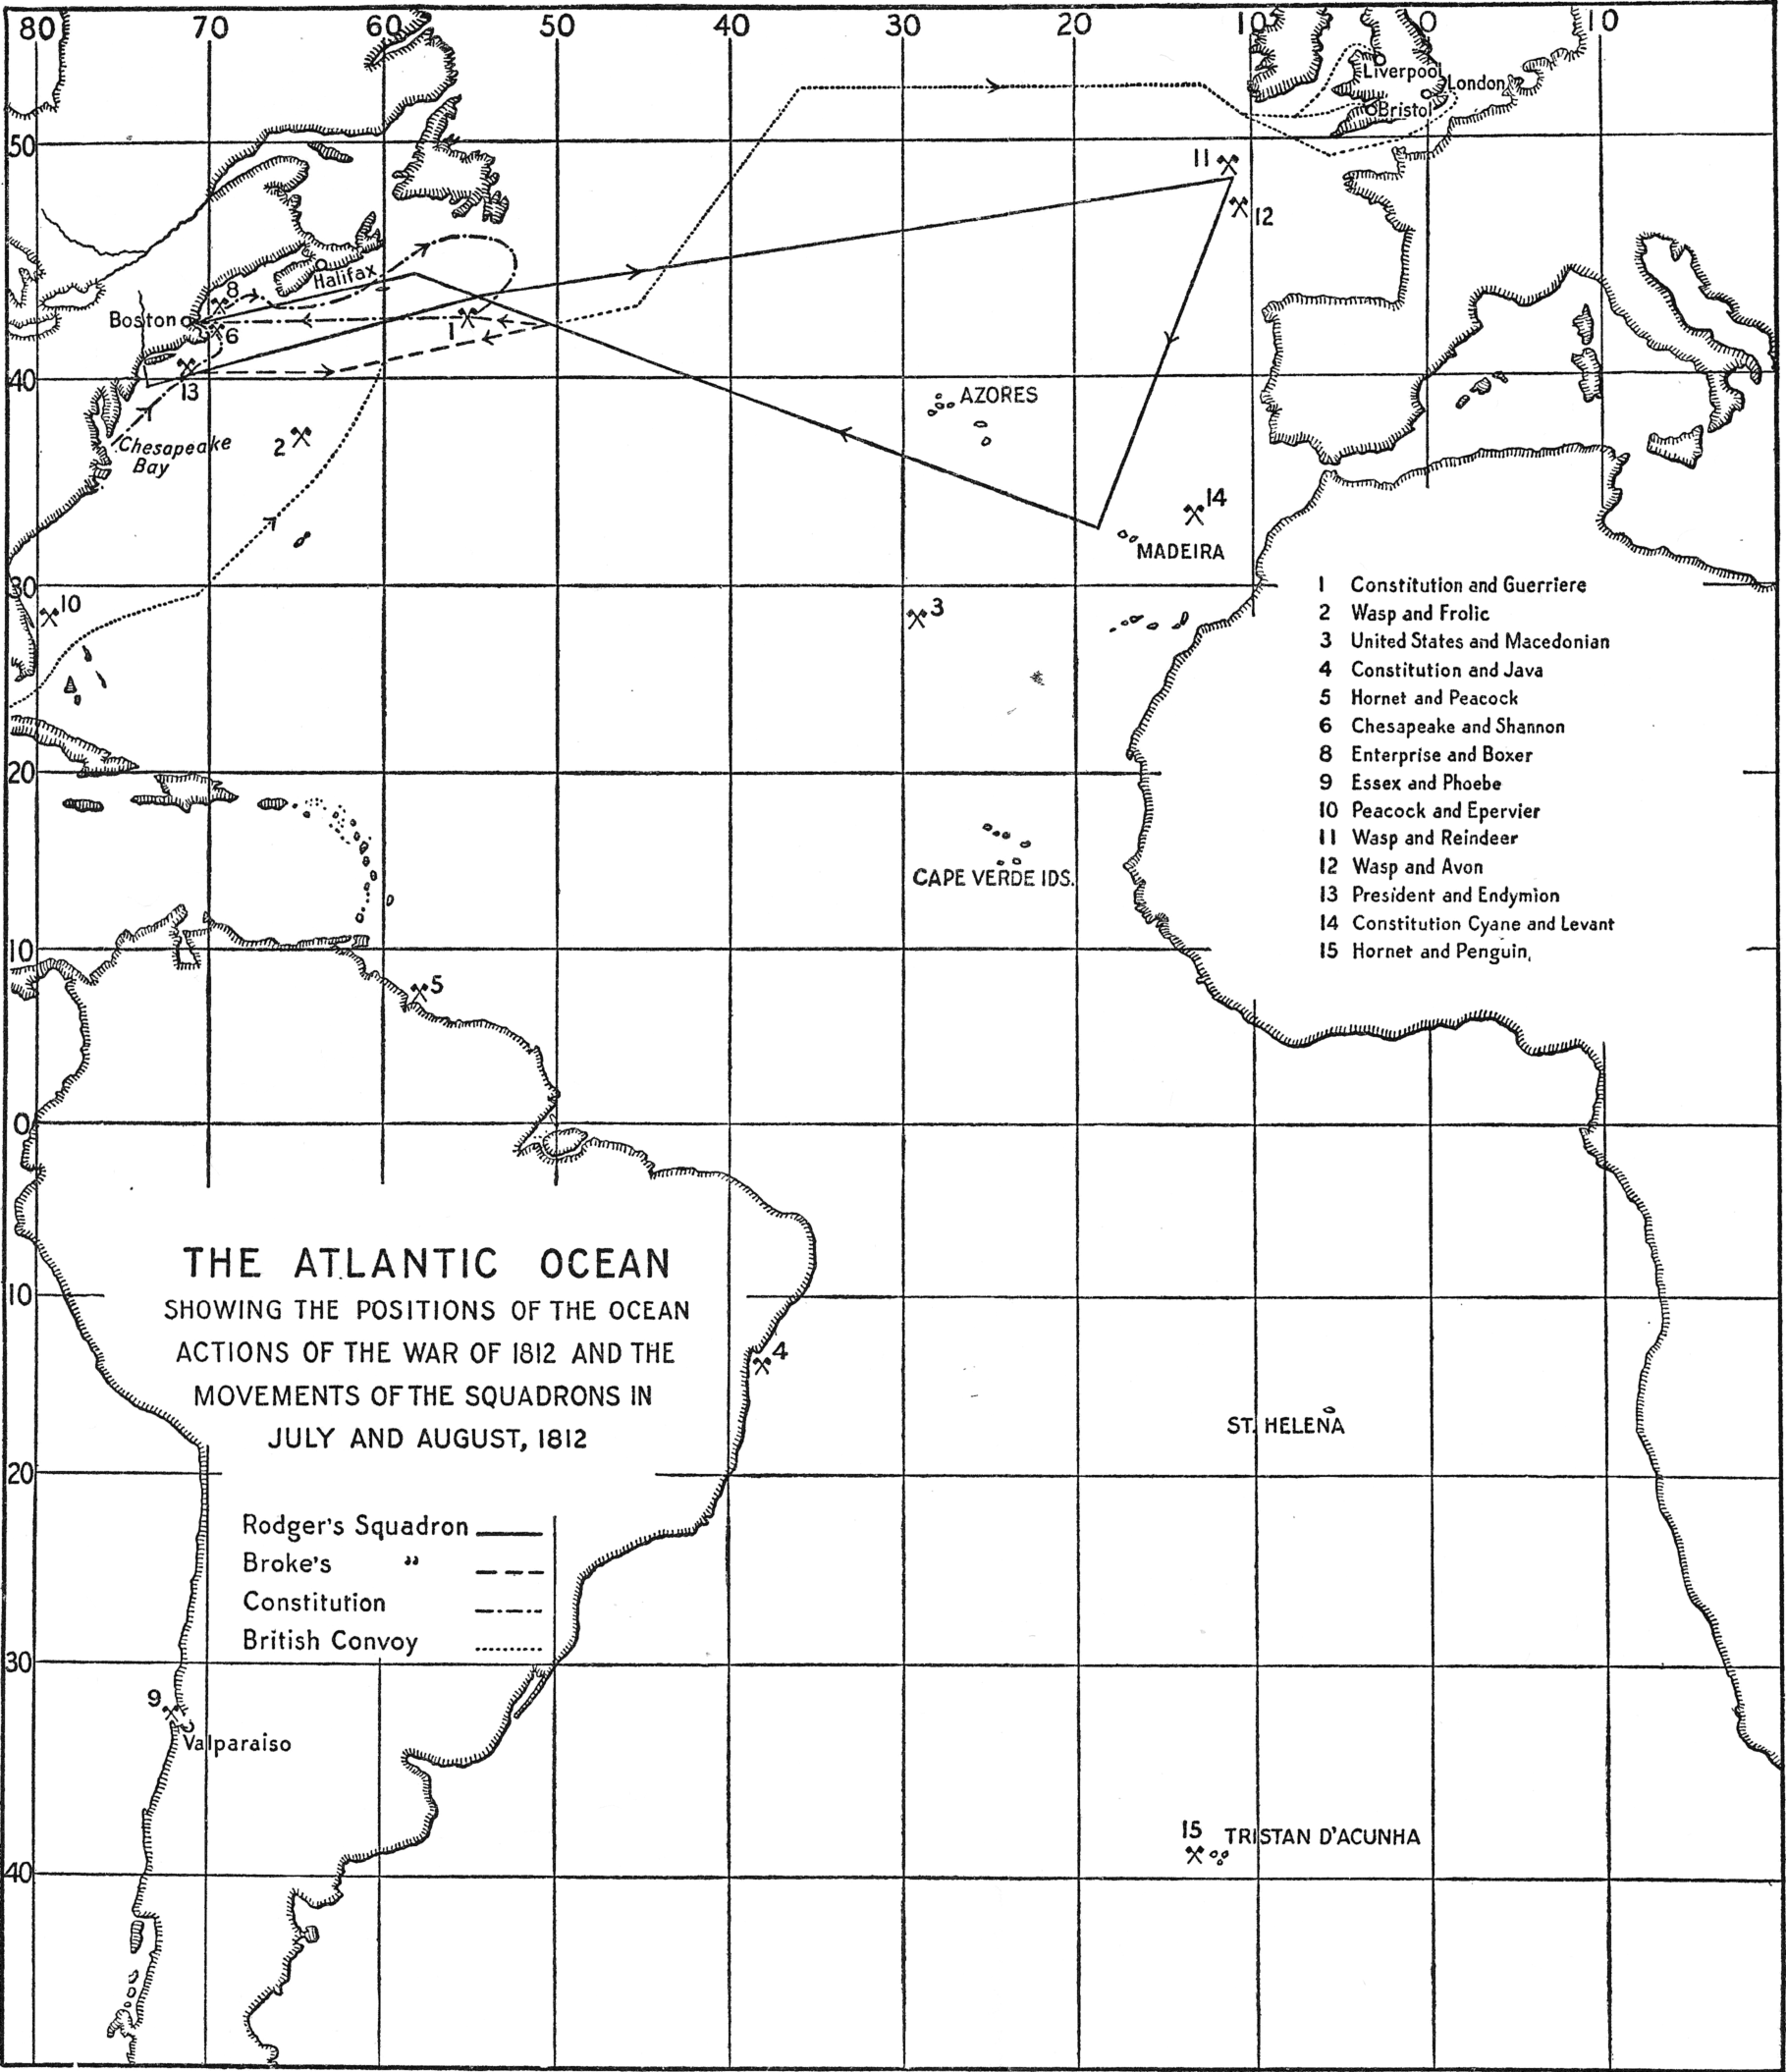 [The Atlantic Ocean, showing the positions of the ocean actions of the War of 1812 and the movements of the squadrons in July and August, 1812]